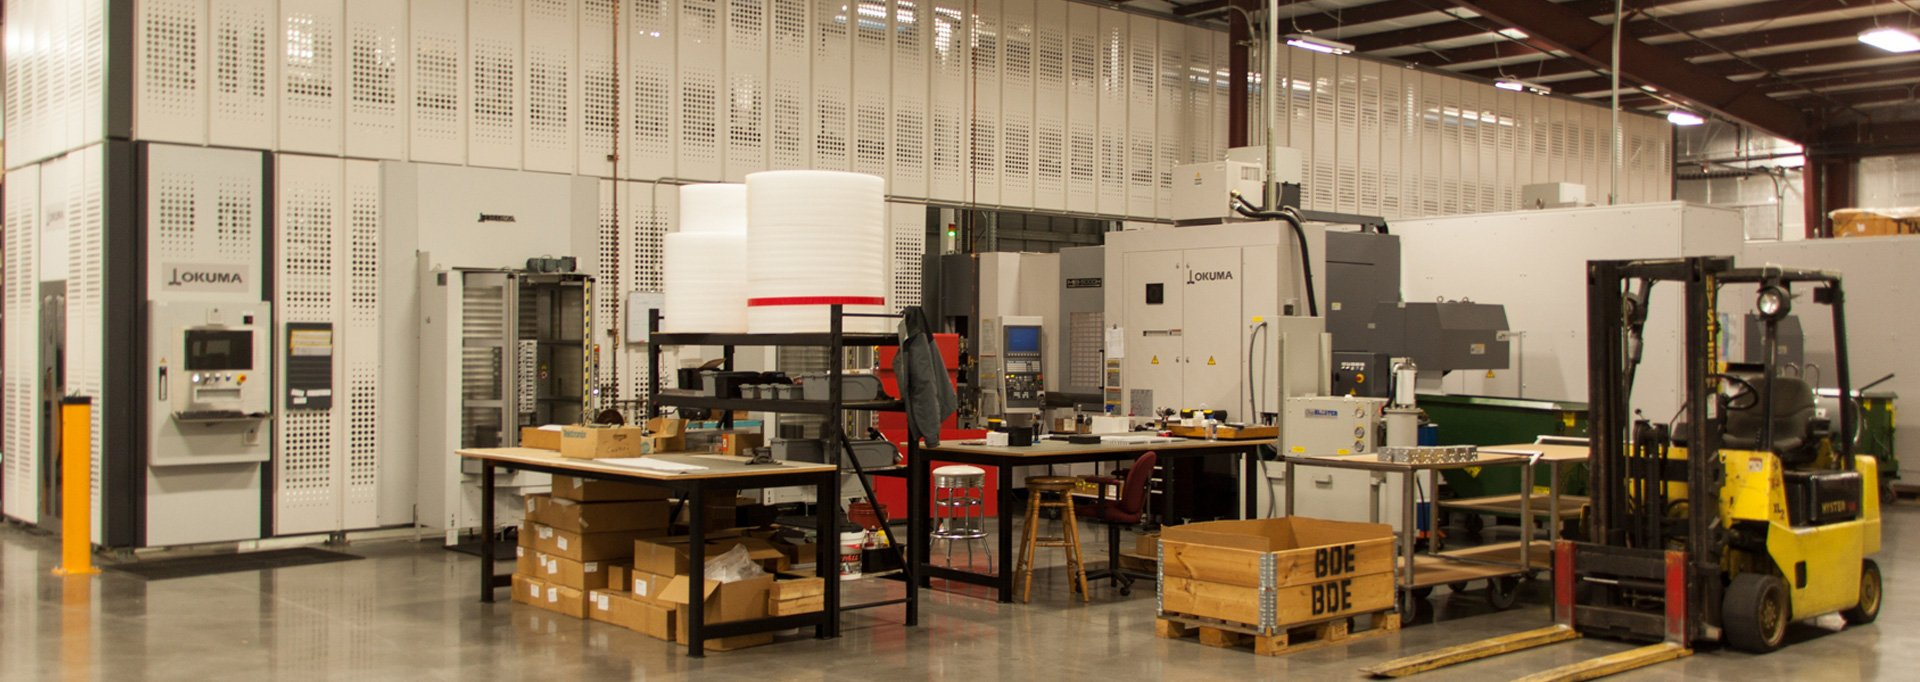 CNC Machine Shop Portland BDE Manufacturing Technologies